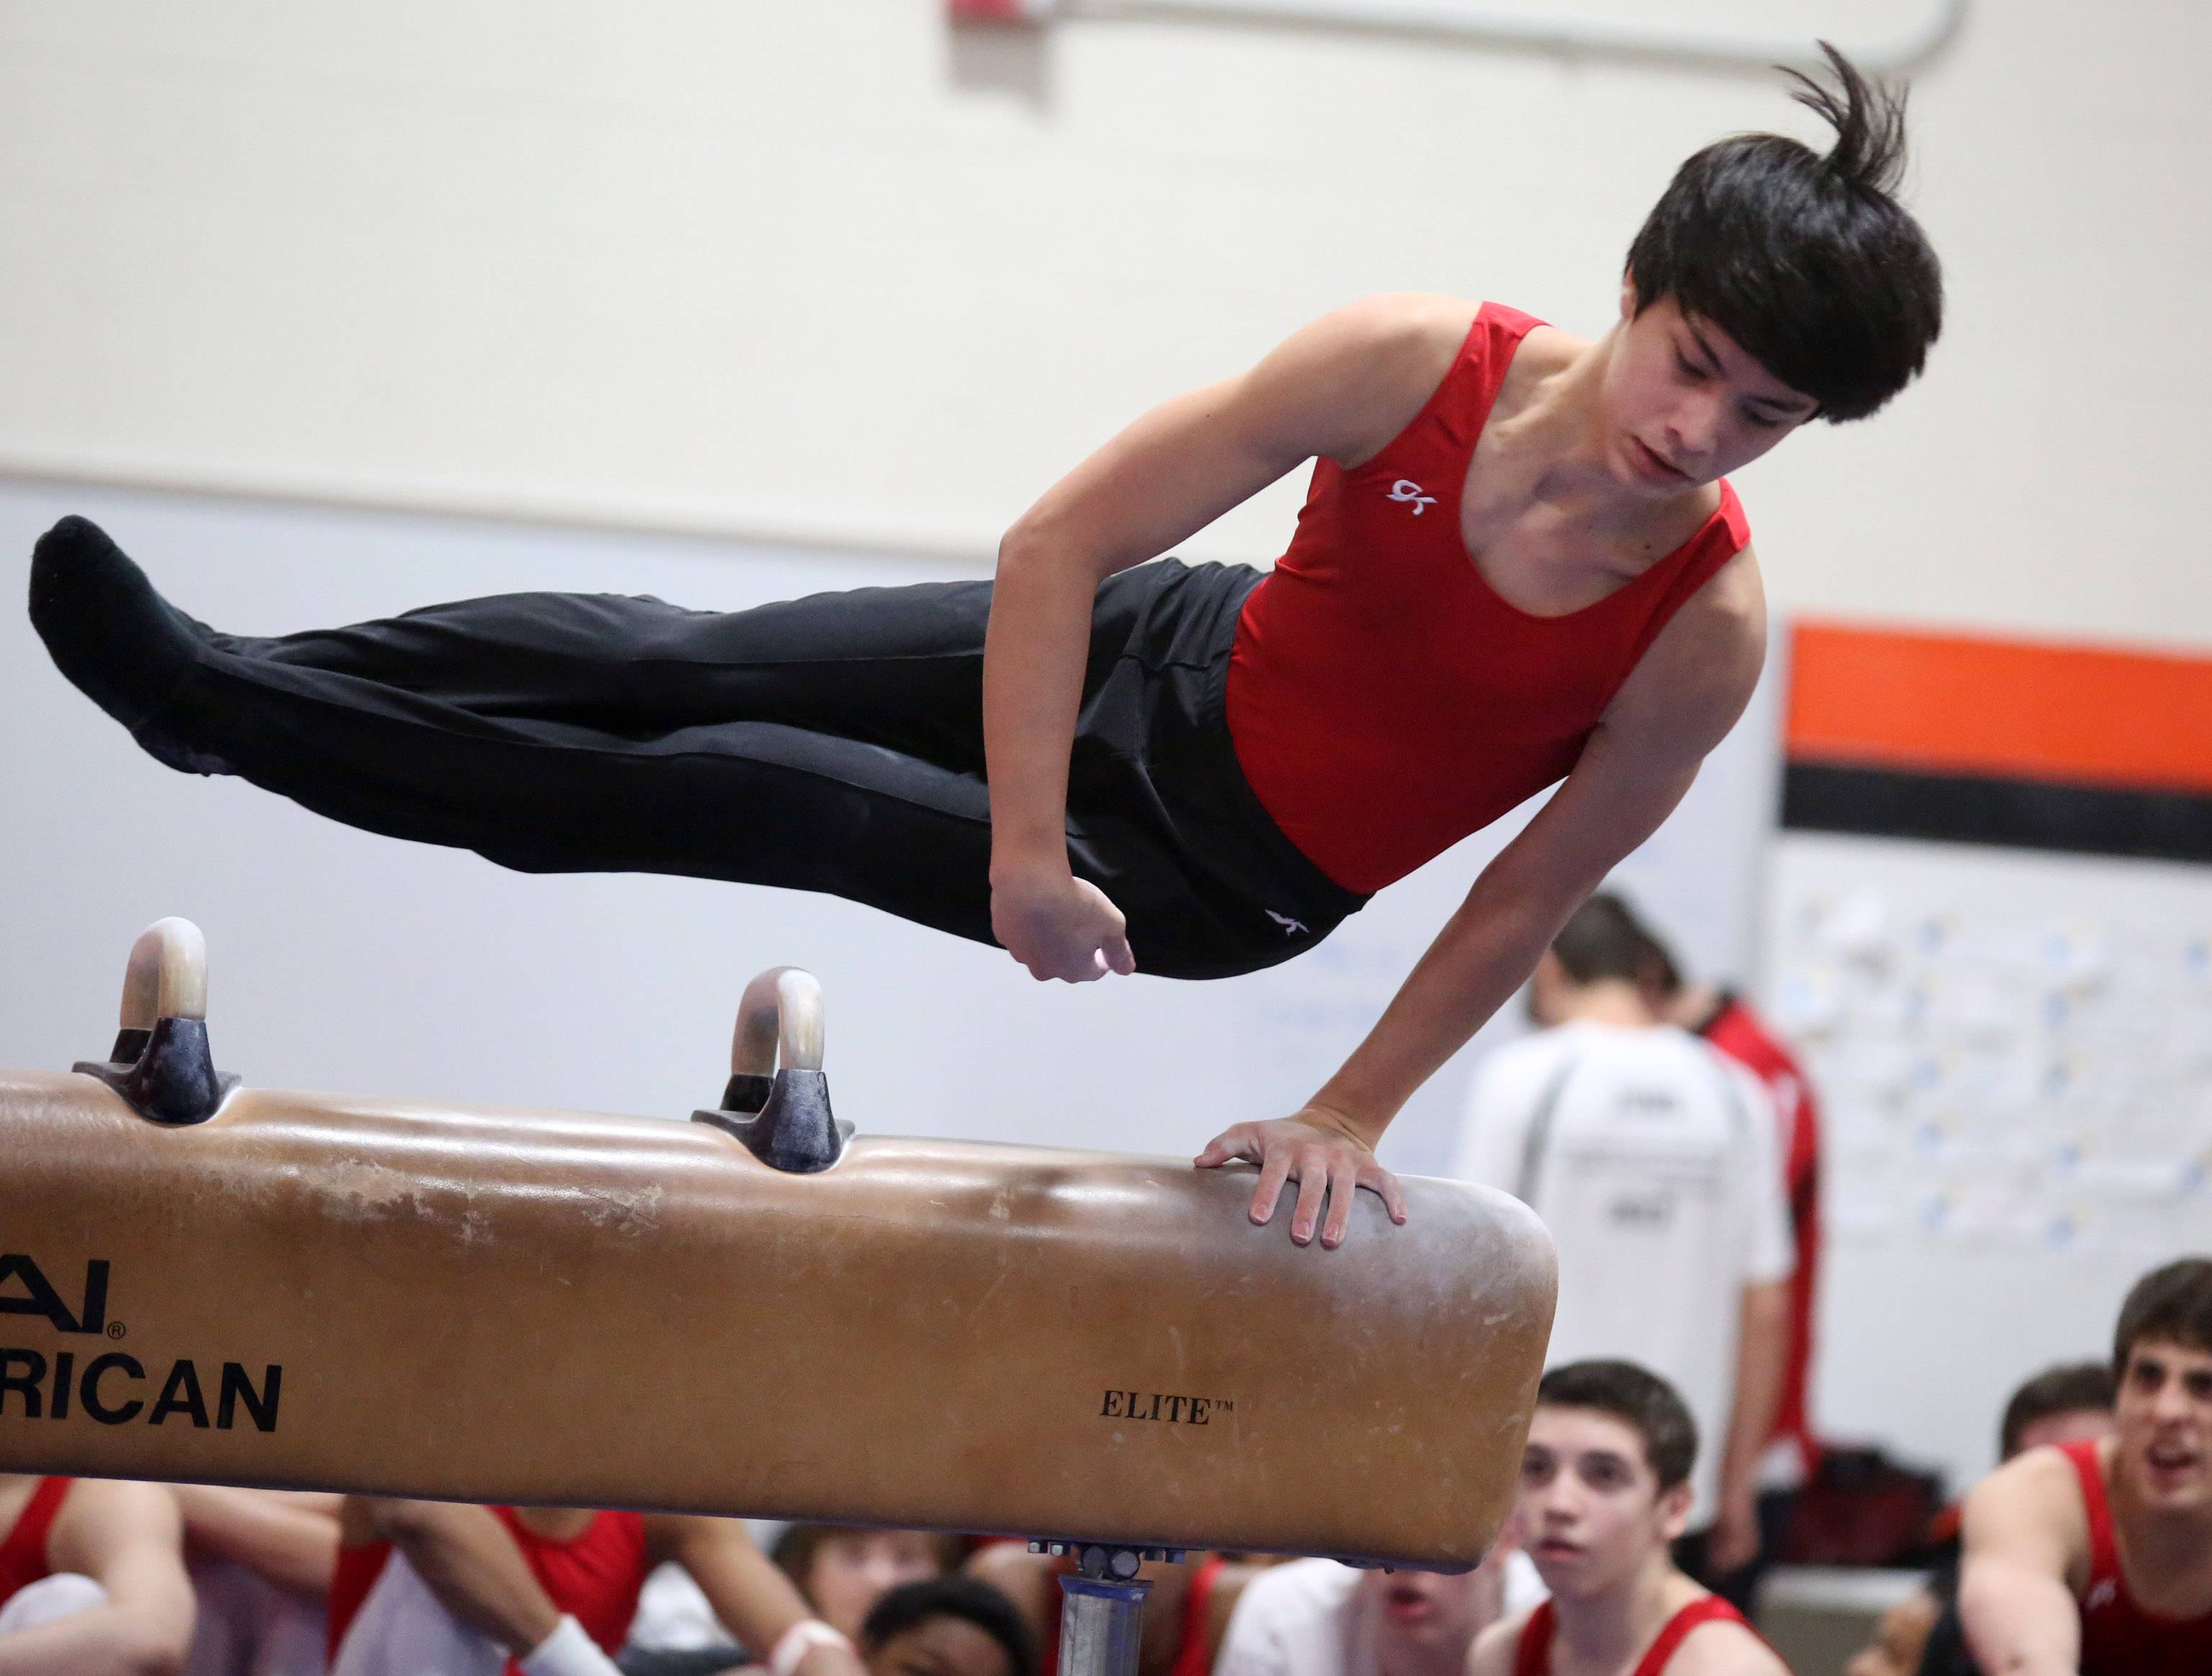 Naperville Central's Keenan Oshiro competes on pommel horse on Saturday at Libertyville.